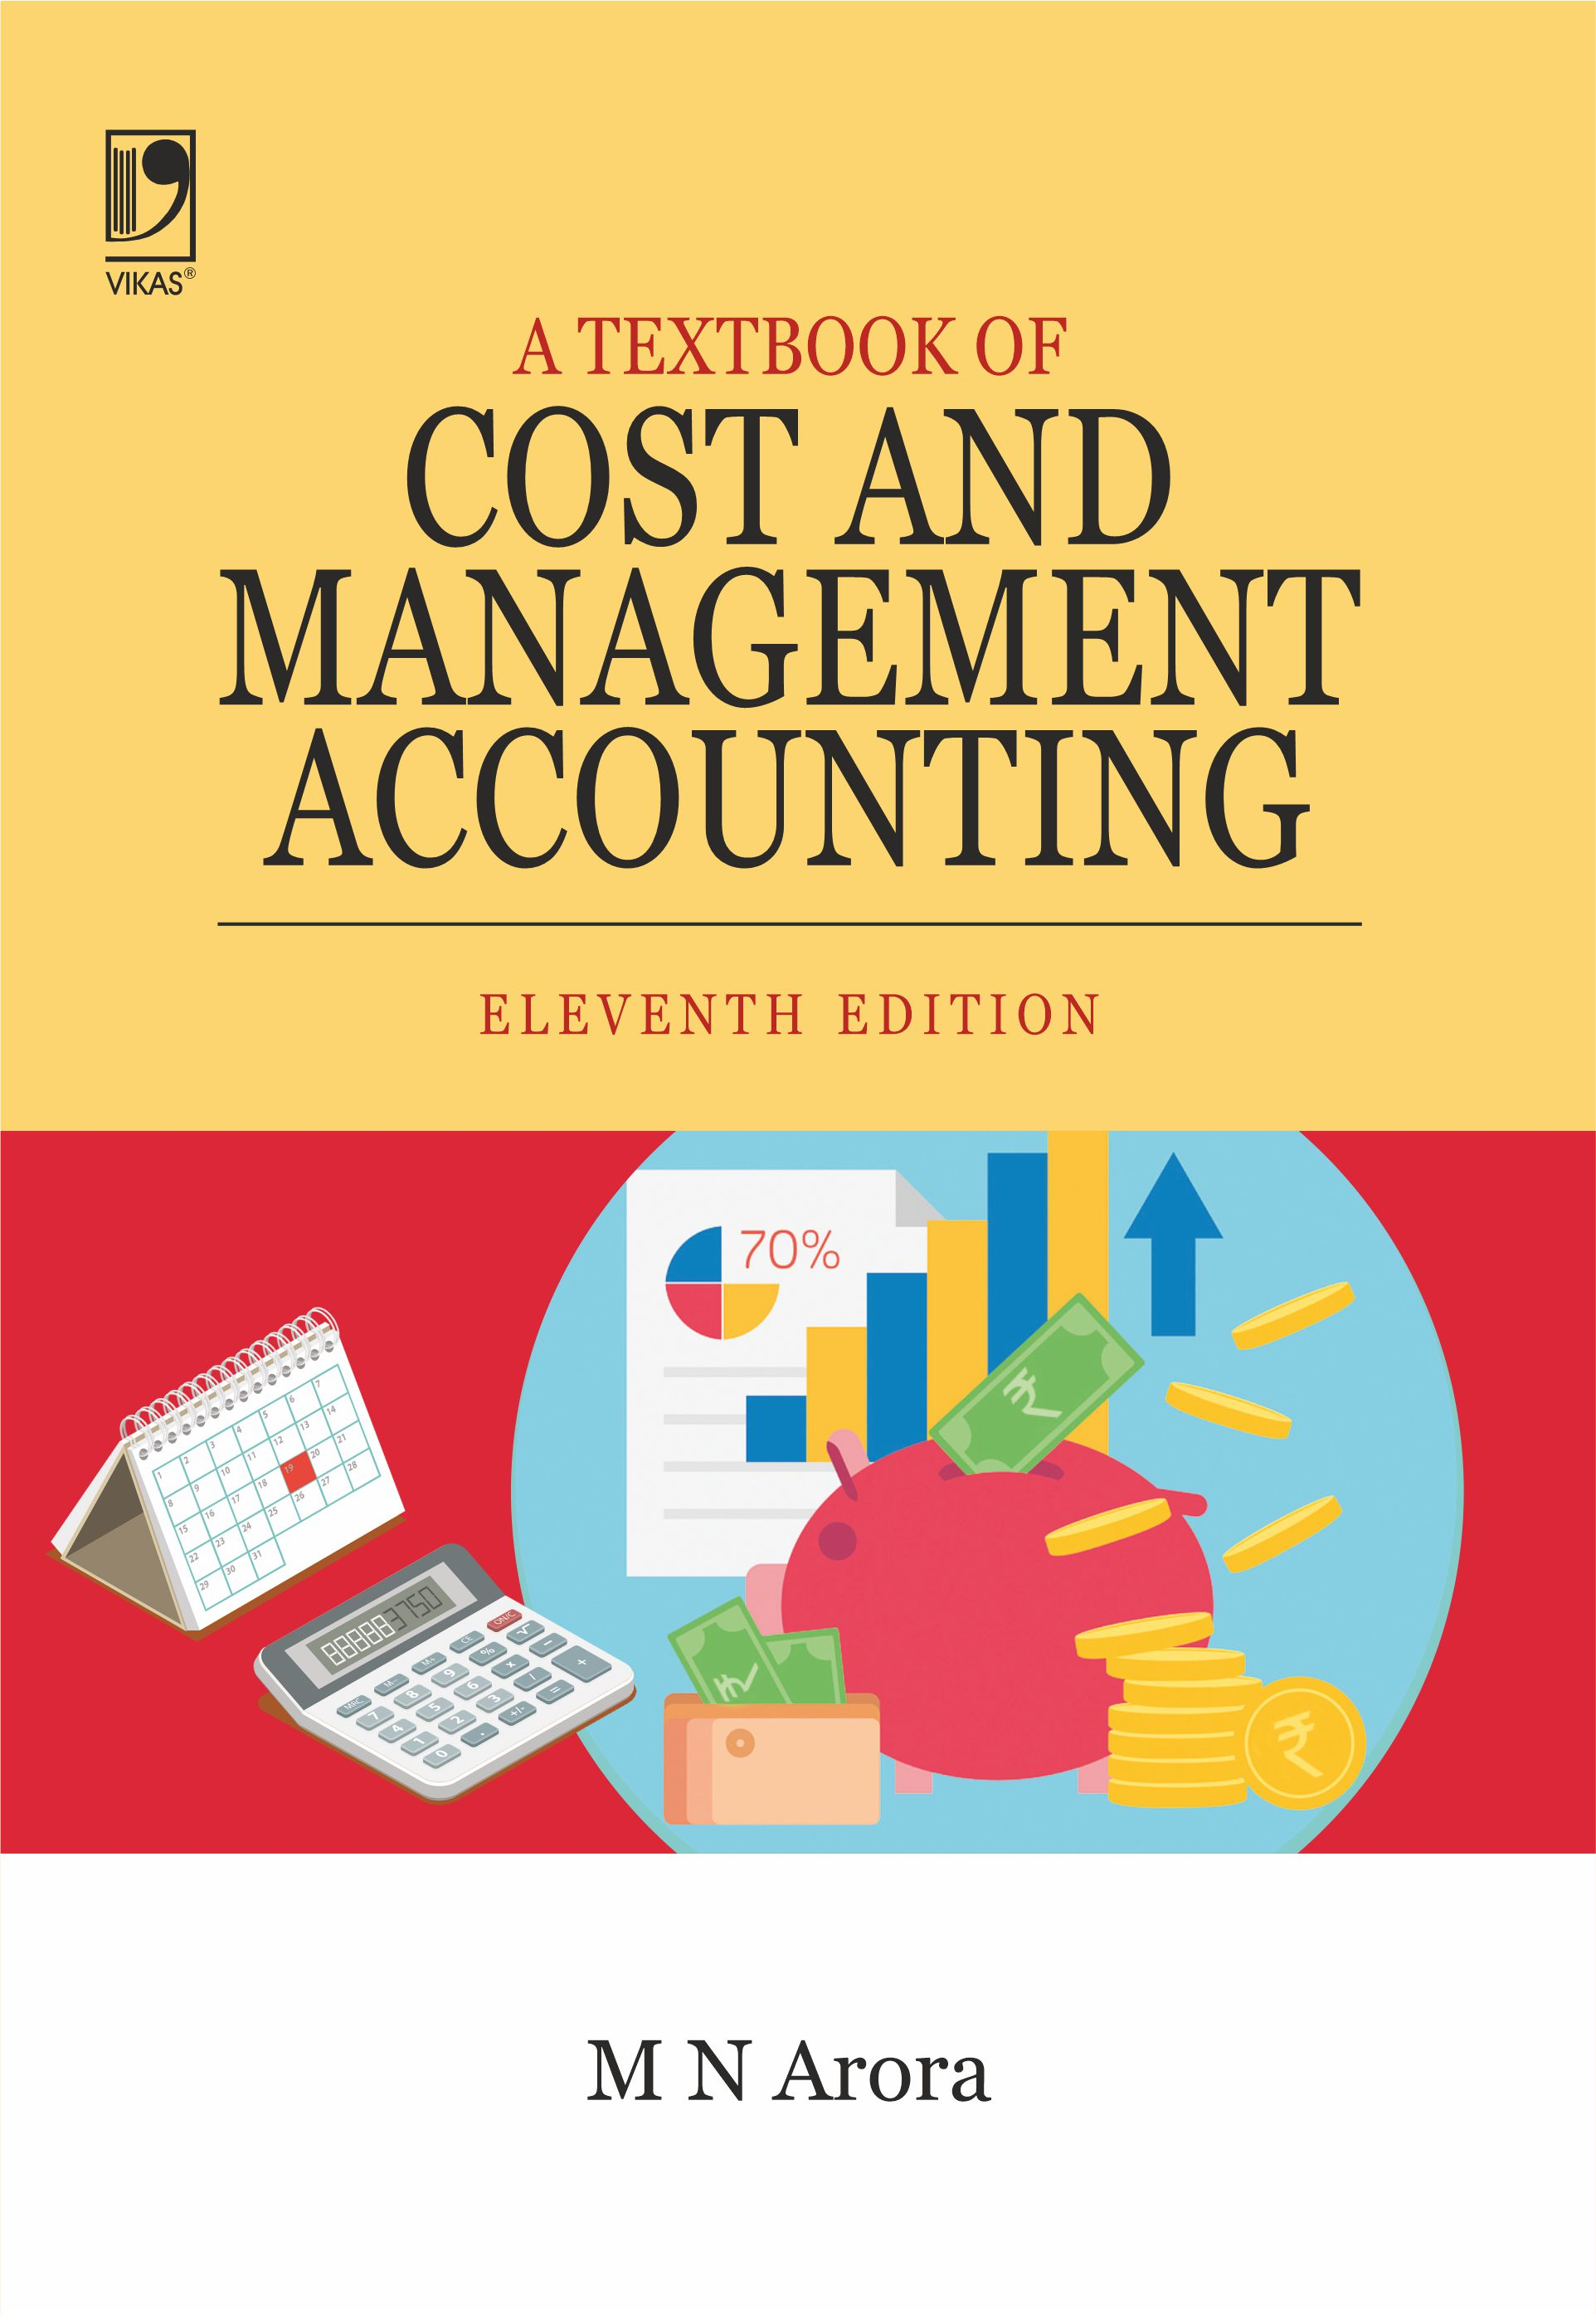 A Textbook of Cost and Management Accounting, 11/e